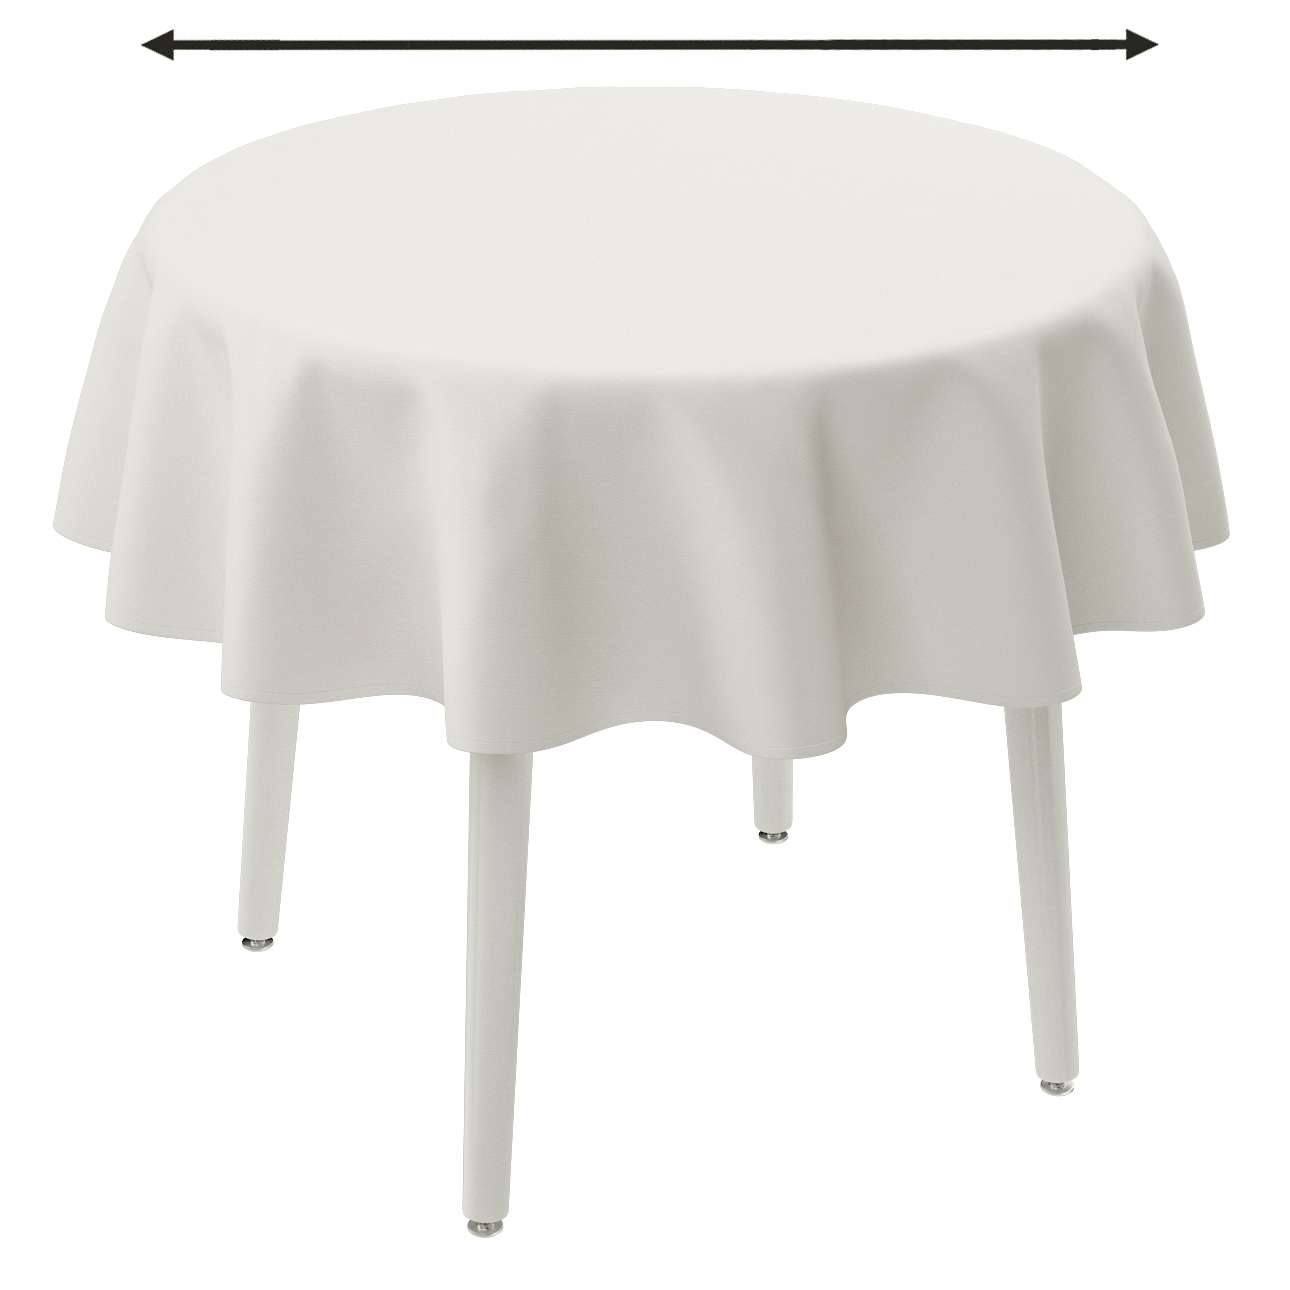 Round tablecloth in collection Panama Cotton, fabric: 702-34